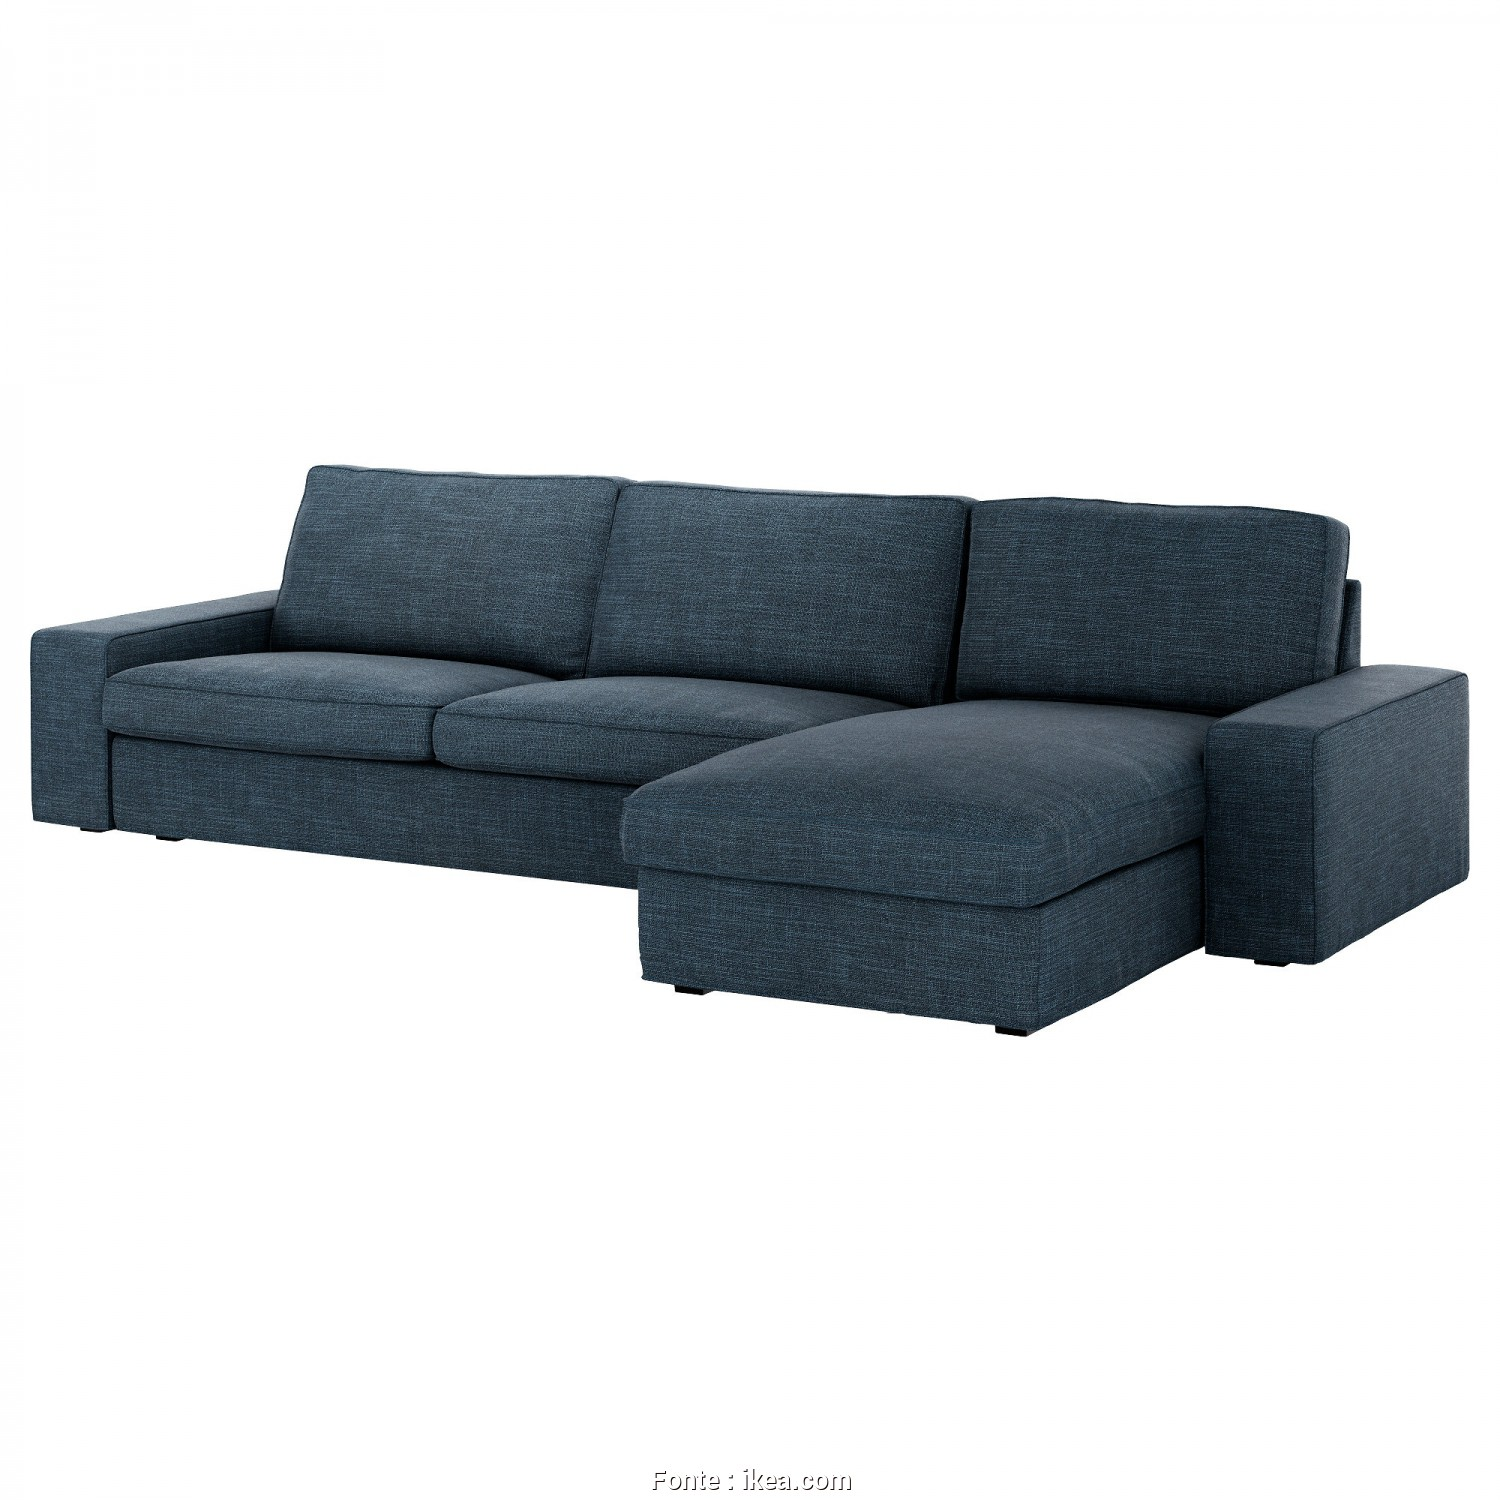 Backabro Sofa, With Chaise Longue £725 Ikea, A Buon Mercato IKEA KIVIK 4-Seat Sofa, Chaise Longue, Either Be Used Freestanding Or Added